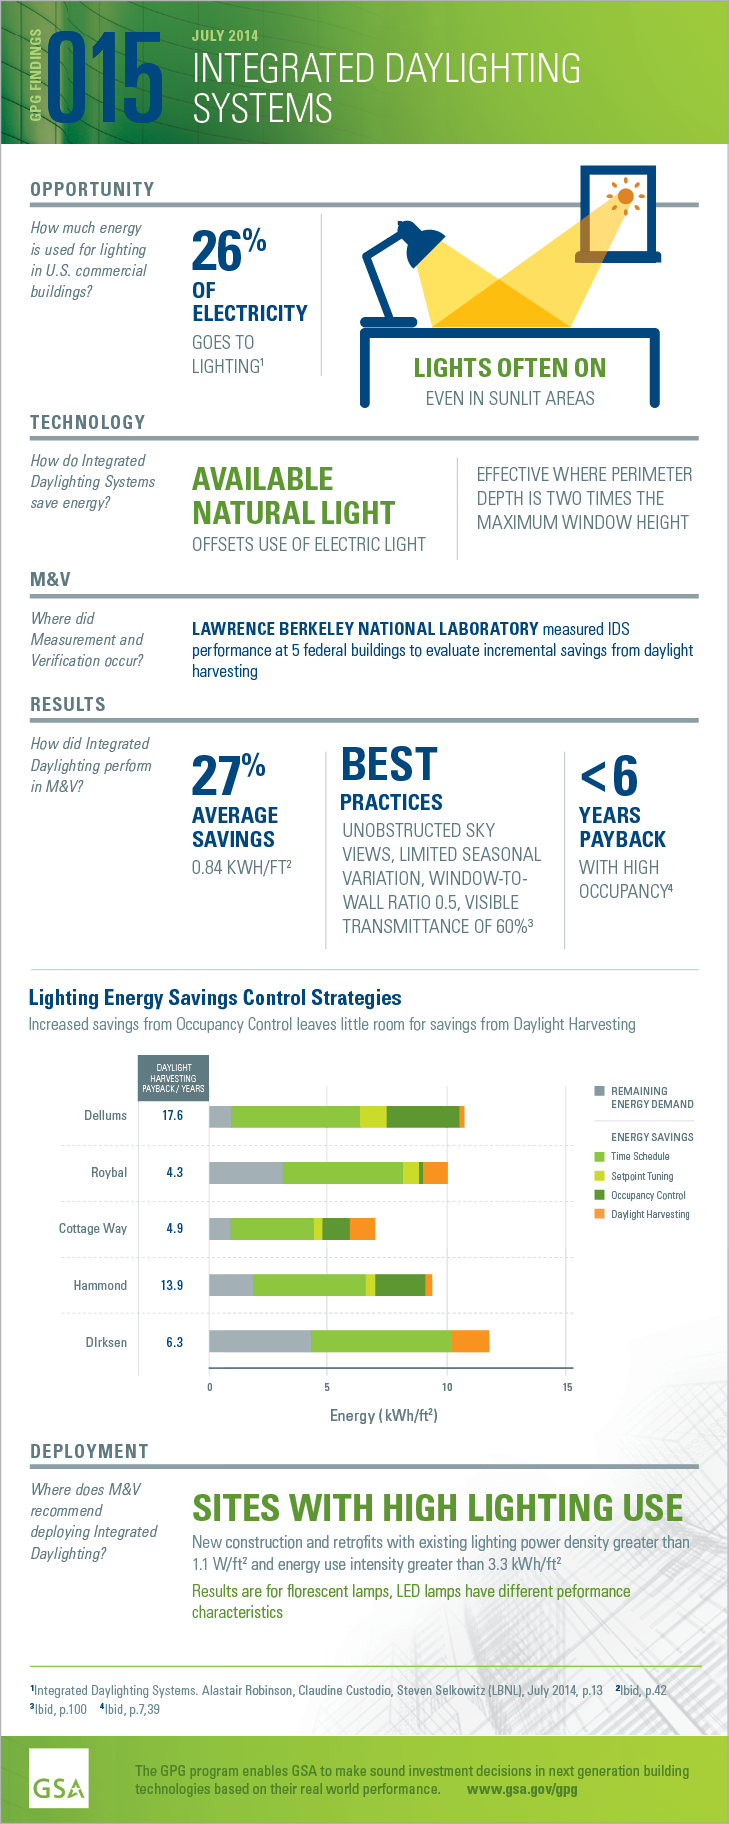 GPG Findings 15, July 2014, Integrated Daylighting Systems. Opportunity: How much energy is used for lighting in U.S. commercial buildings? 26% of electricity goes to lighting. Lights often on even in sunlit areas. Technology: How do Integrated Daylighting Systems save energy? Available natural light offsets use of electric light. Effective where perimeter depth is two times the maximum window height. Measurement and Verification. Where did M and V occur? Lawrence Berkeley National Laboratory measured IDS performance at 5 federal buildings to evaluate incremental savings from daylight harvesting. Results: How did Integrated Daylighting perform in M and V? 27% average savings 0.84 kWh/ft2. Best practices: unobstructed sky views, limited seasonal variation, window-to-wall ratio 0.5, visible transmittance of 60%. Less than 6 years payback with high occupancy. Deployment: Where does M and V recommend deploying Integrated Daylighting? Sites with high lighting use. New construction and retrofits with existing lighting power density greater than 1.1 W/ft2 and energy intensity greater than 3.3 kWh/ft2. Results are for fluorescent lamps, LED lamps have different performance characteristics.